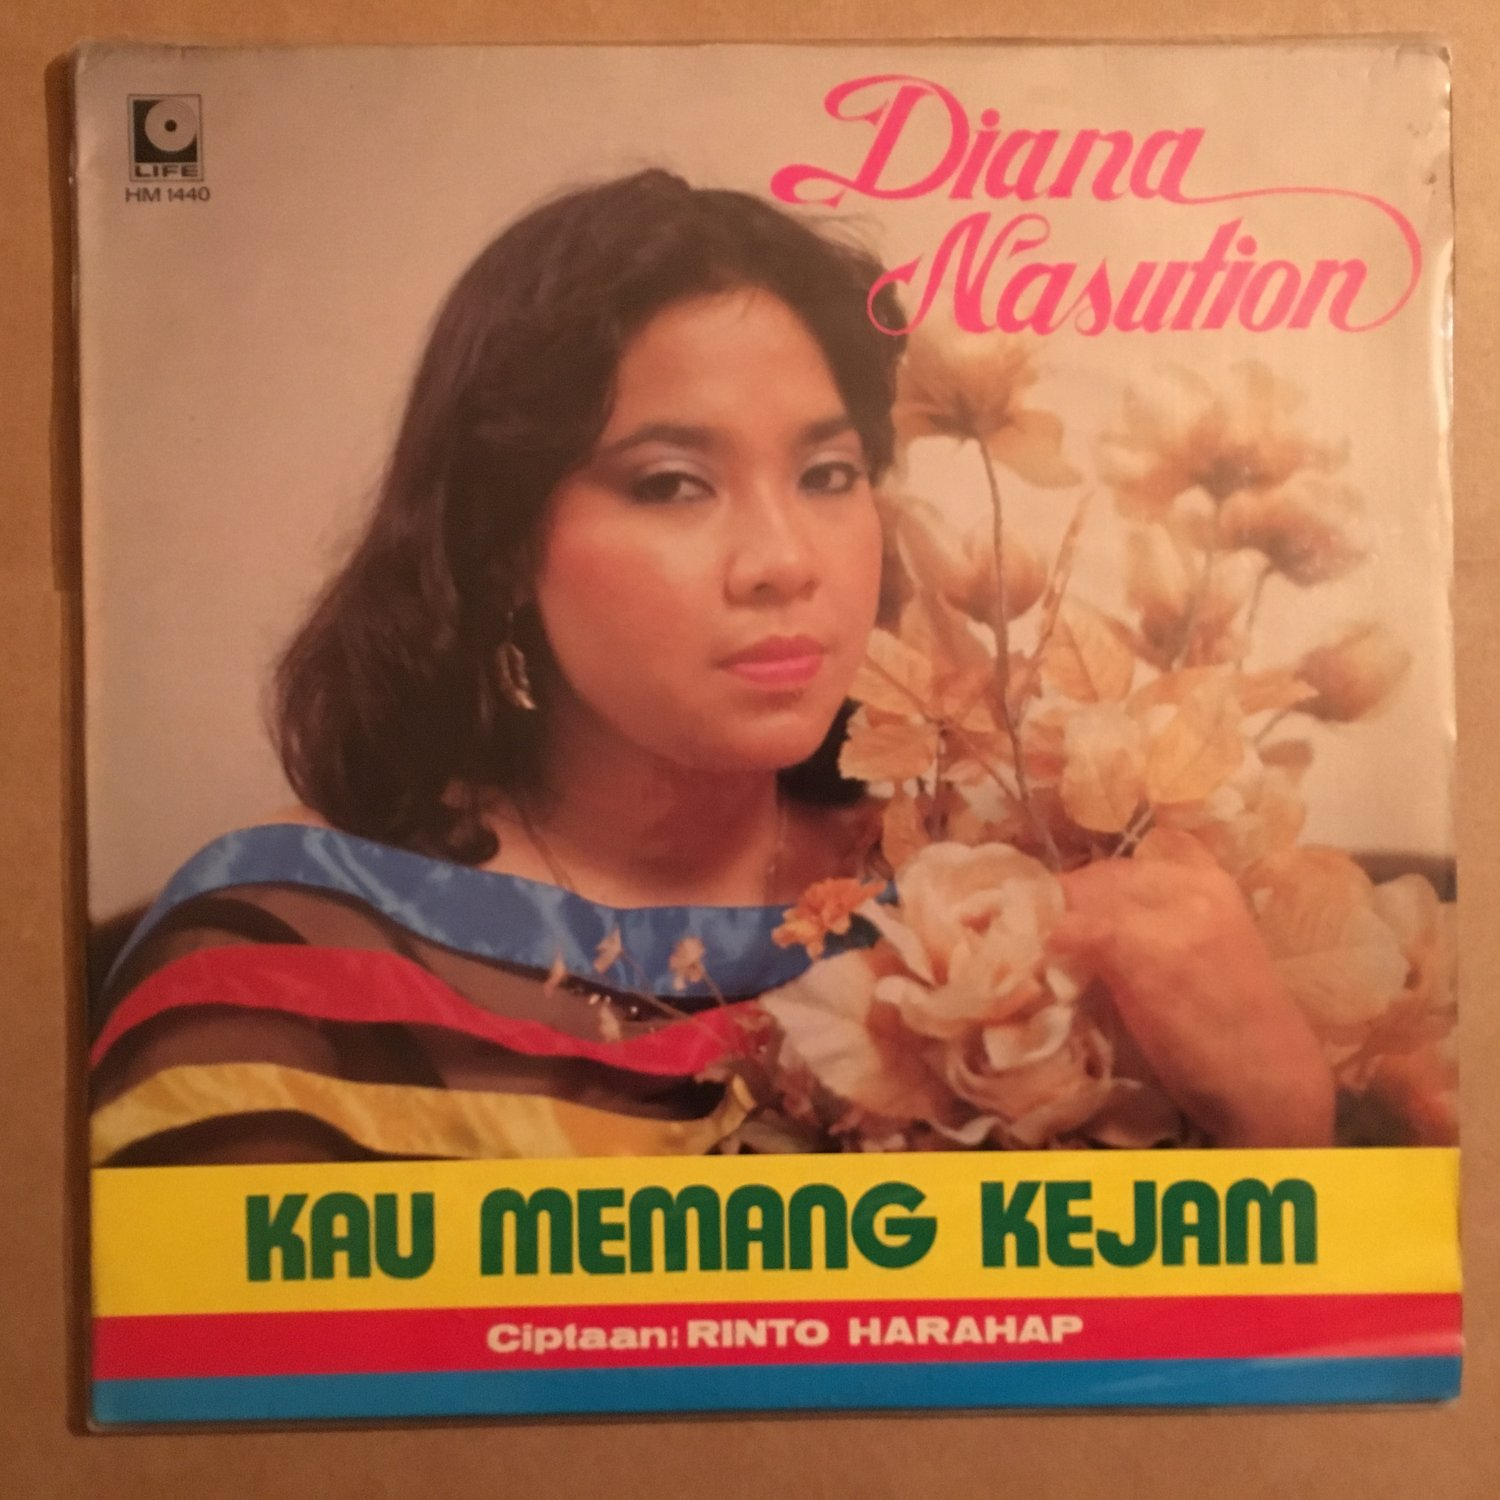 DIANA NUSUTION LP kau memang kejam INDONESIA SWEET SOUL MELLOW FUNK LP mp3 LISTEN